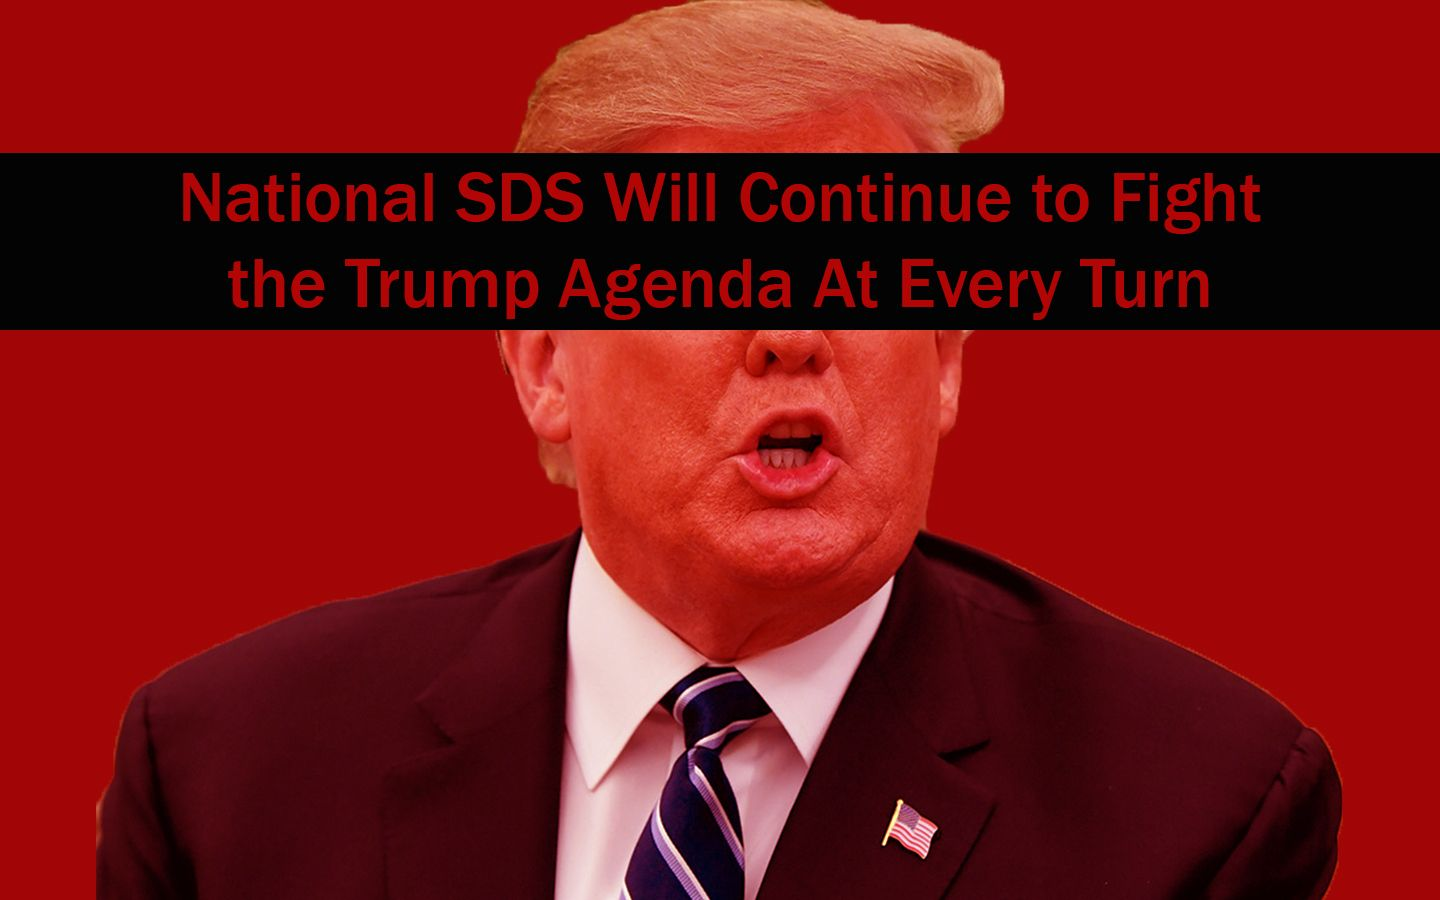 2019 Resolution: National SDS Will Continue to Fight the Trump Agenda At Every Turn